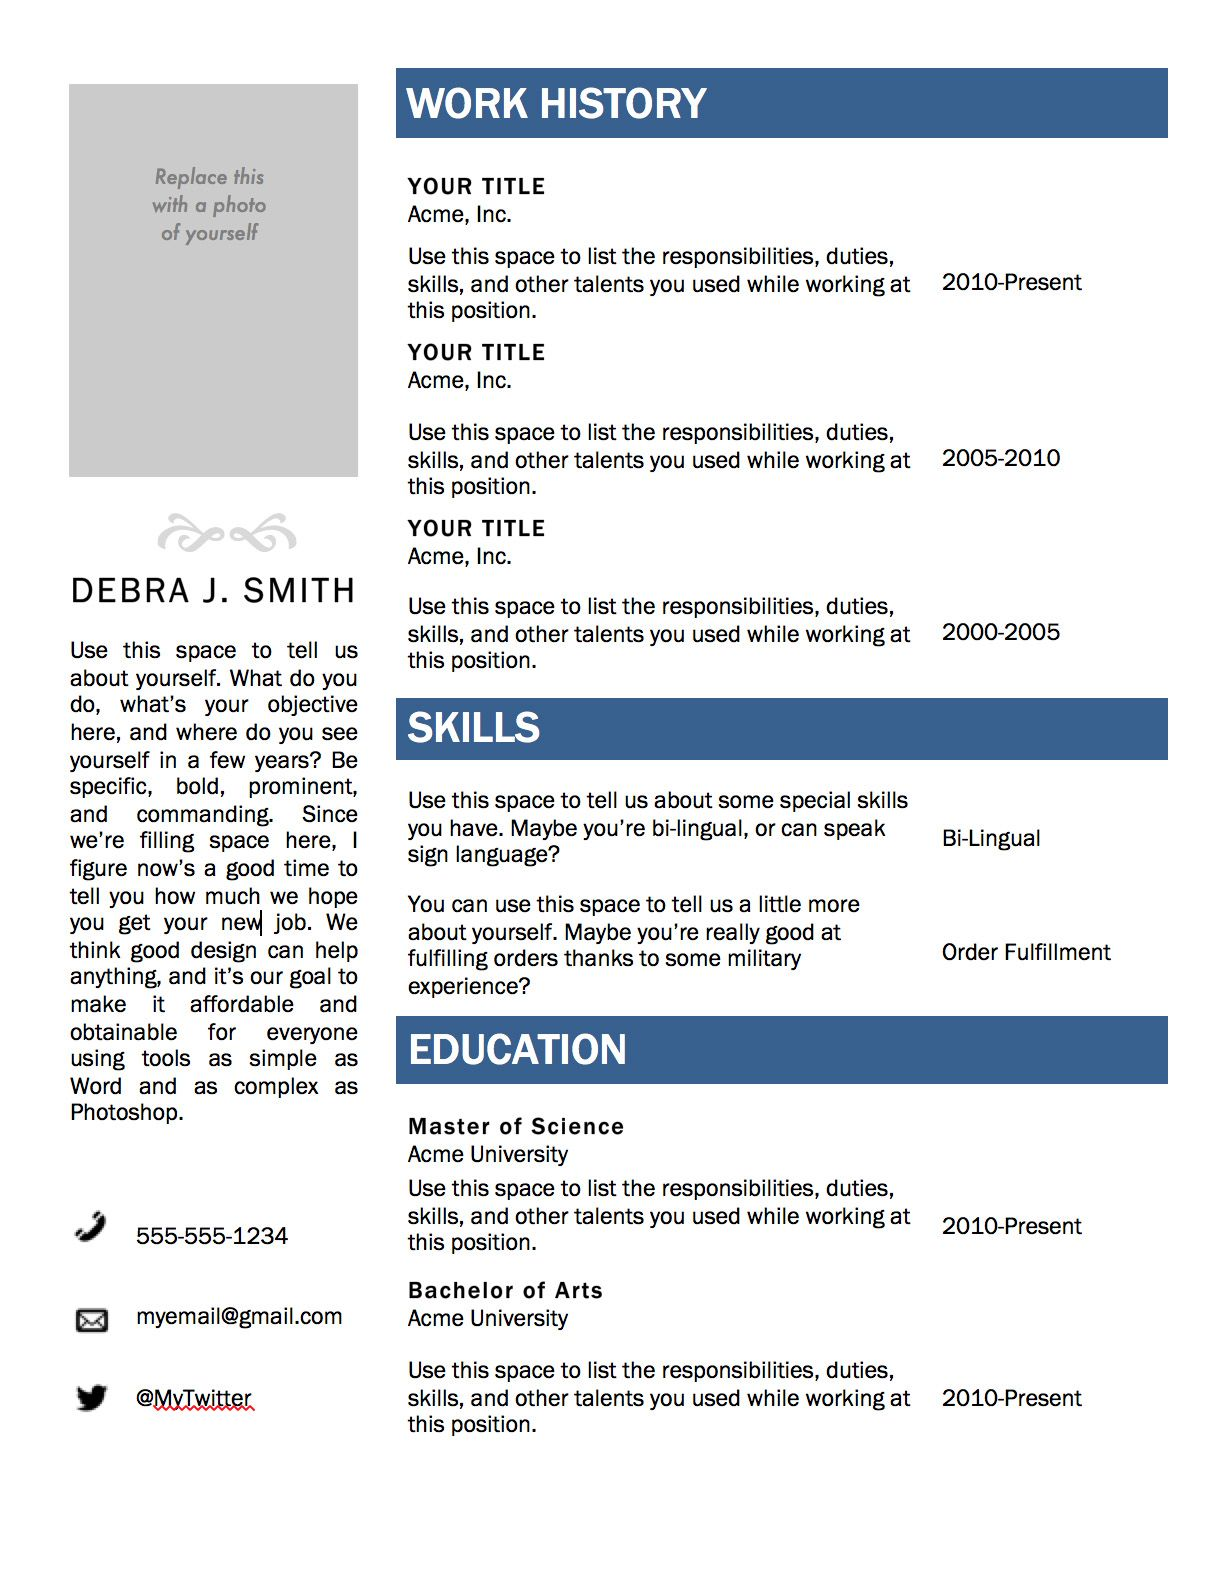 resume download in ms word salary slip format for contract 37540f3c3fad606bf951a8da7293ed9f resume download in ms wordhtml microsoft resume template - Teacher Resume Template Word